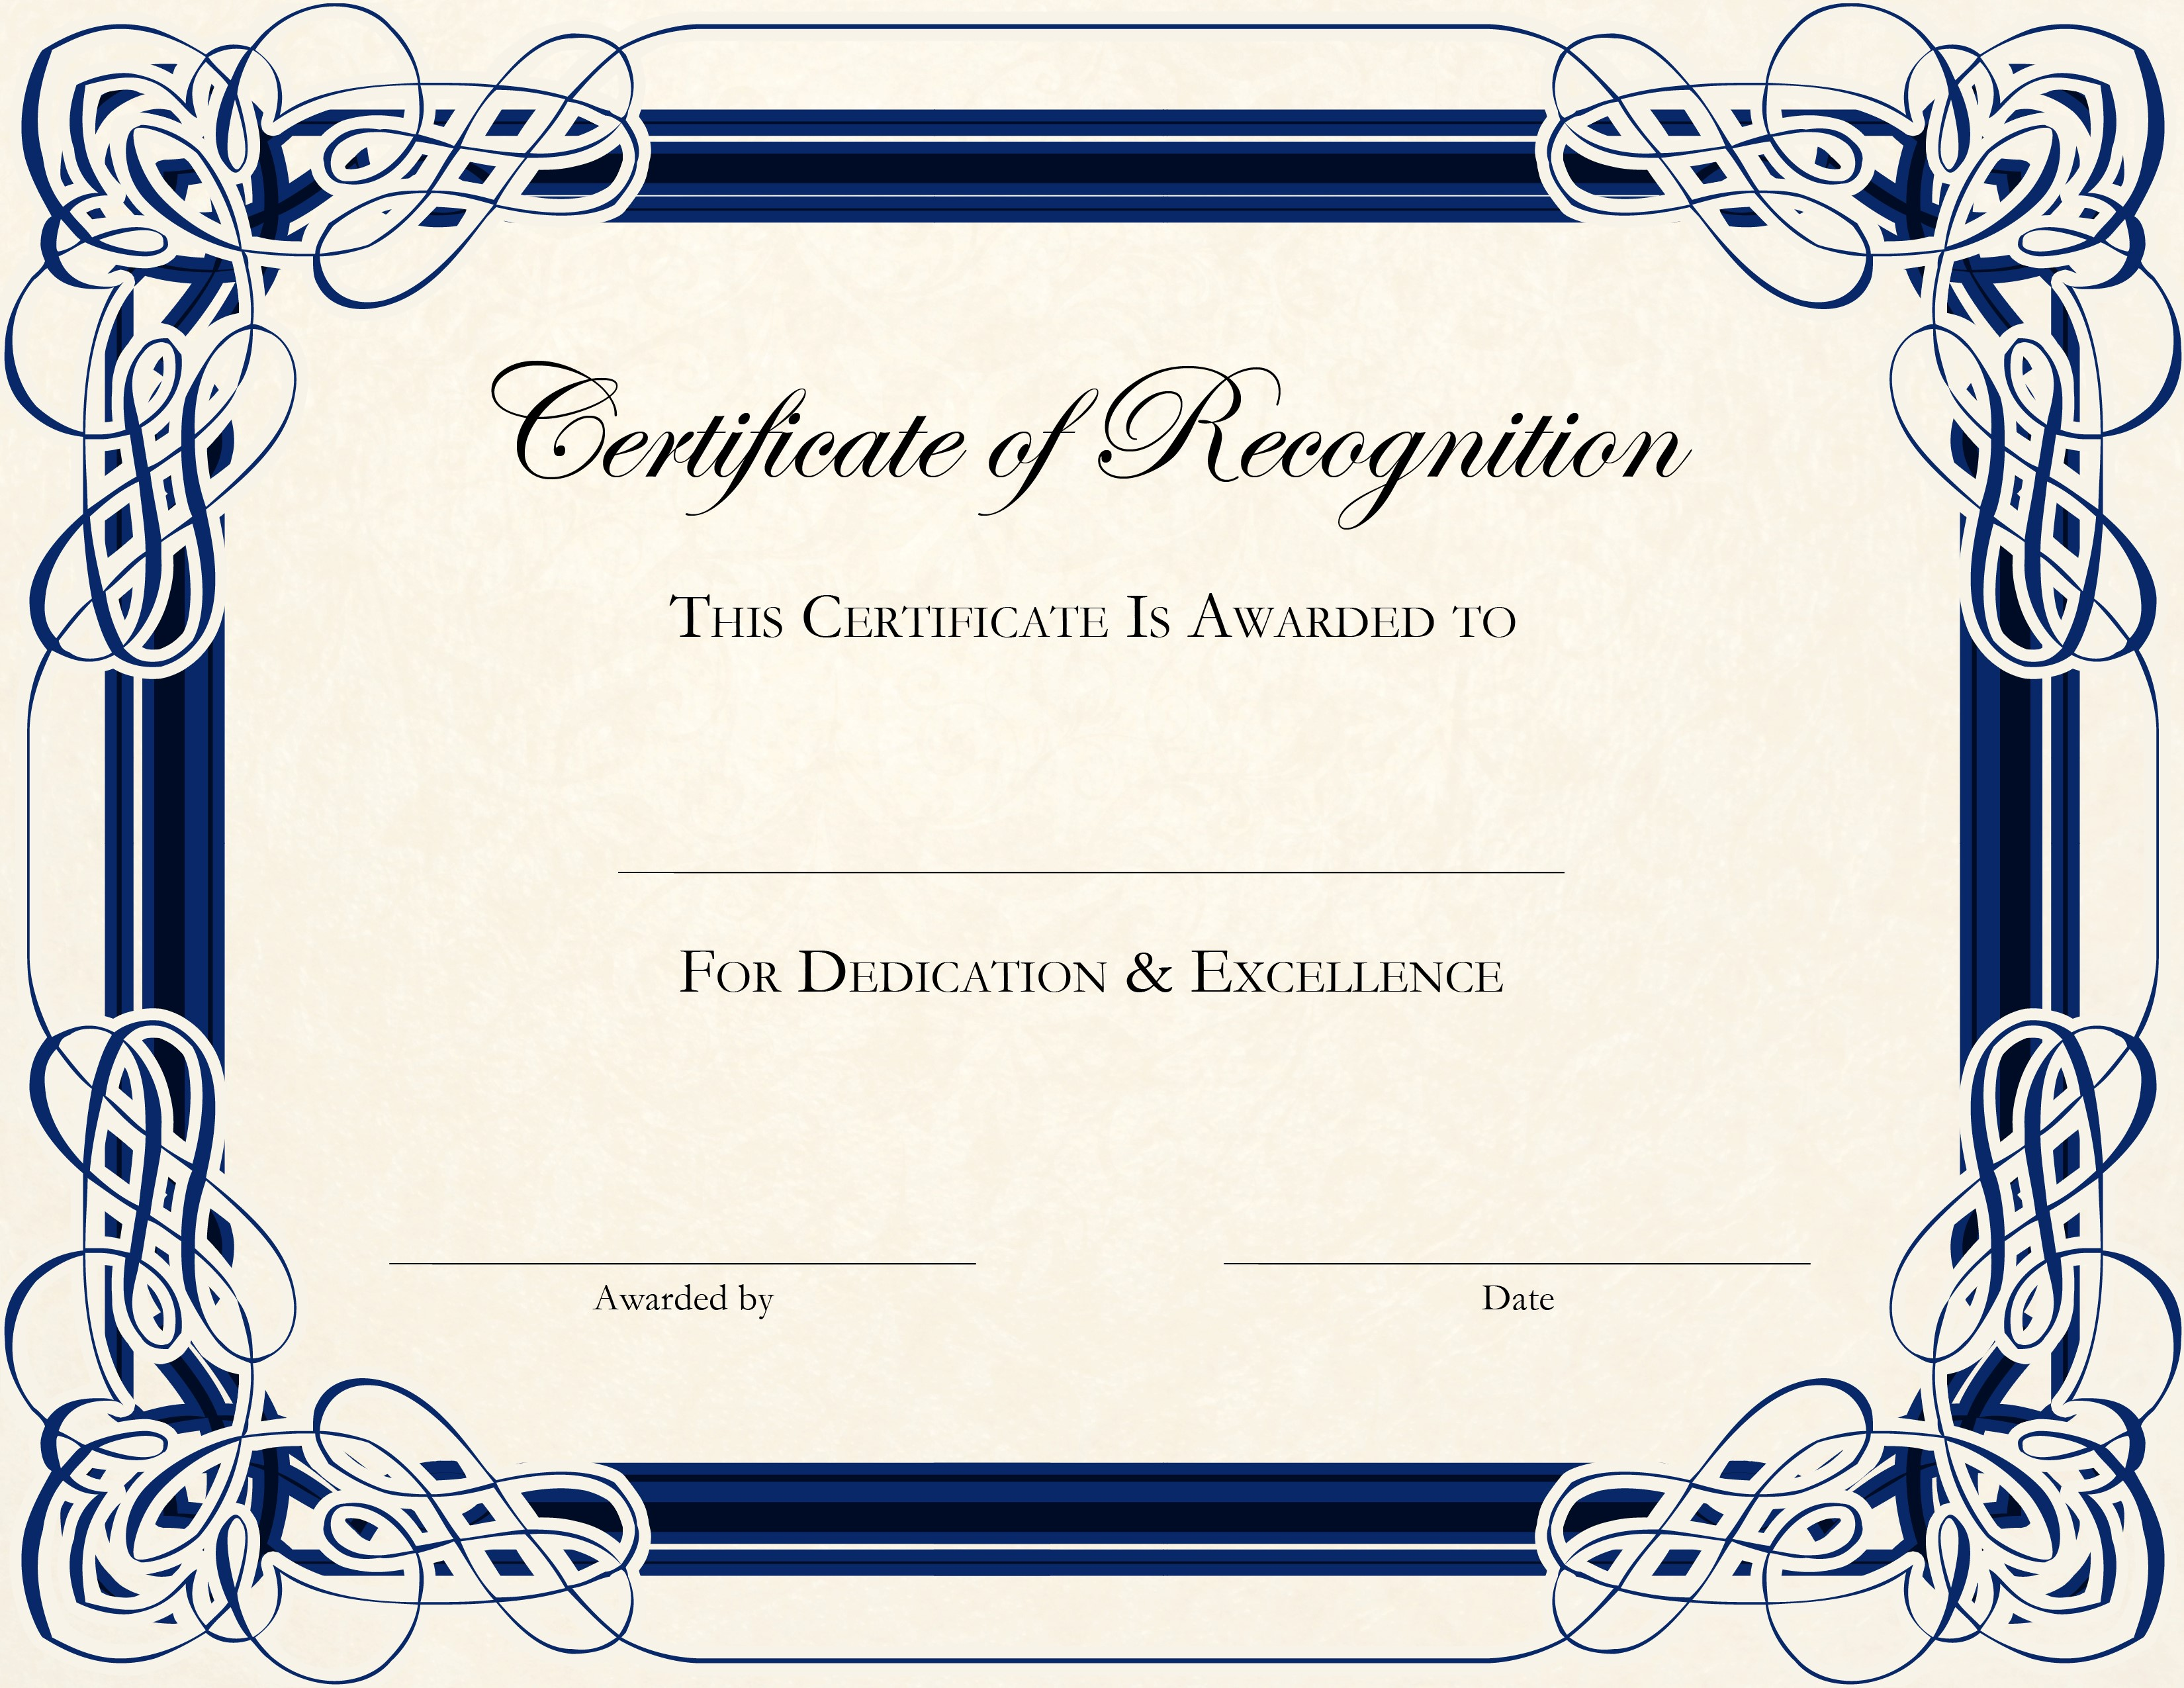 download blank certificate template X3Hr9dTo   St. Gabriel's Youth